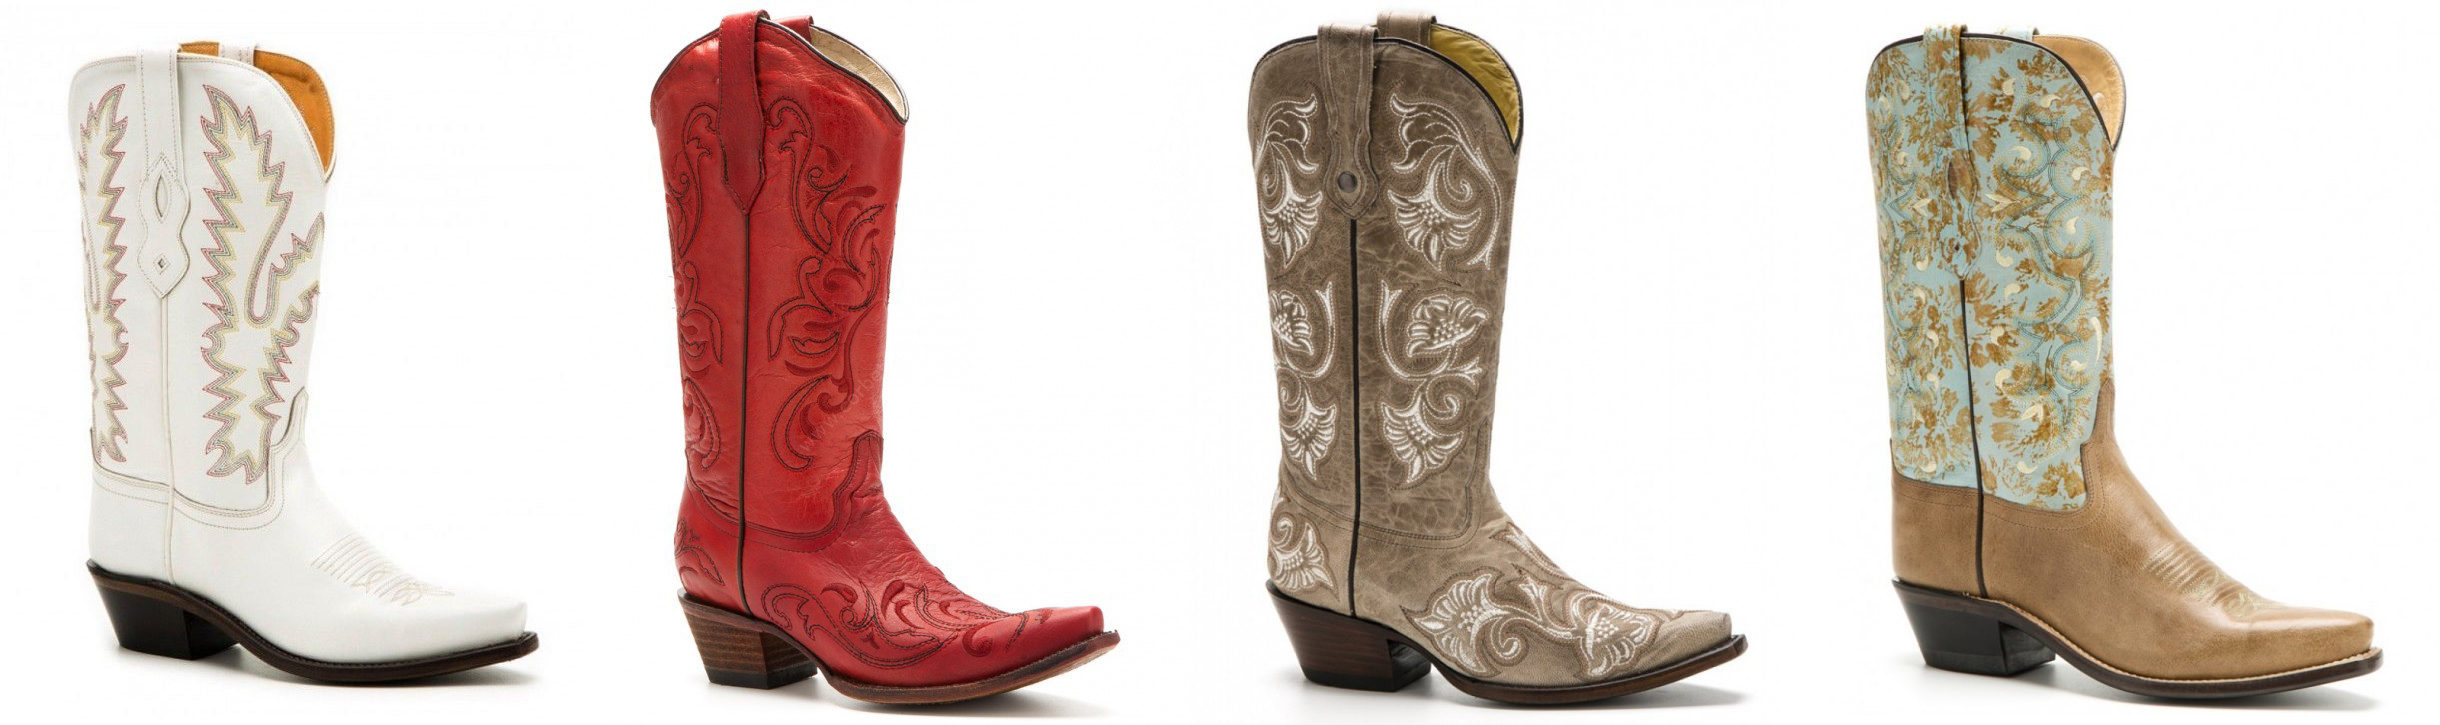 Cowboy boots, your style also in summer